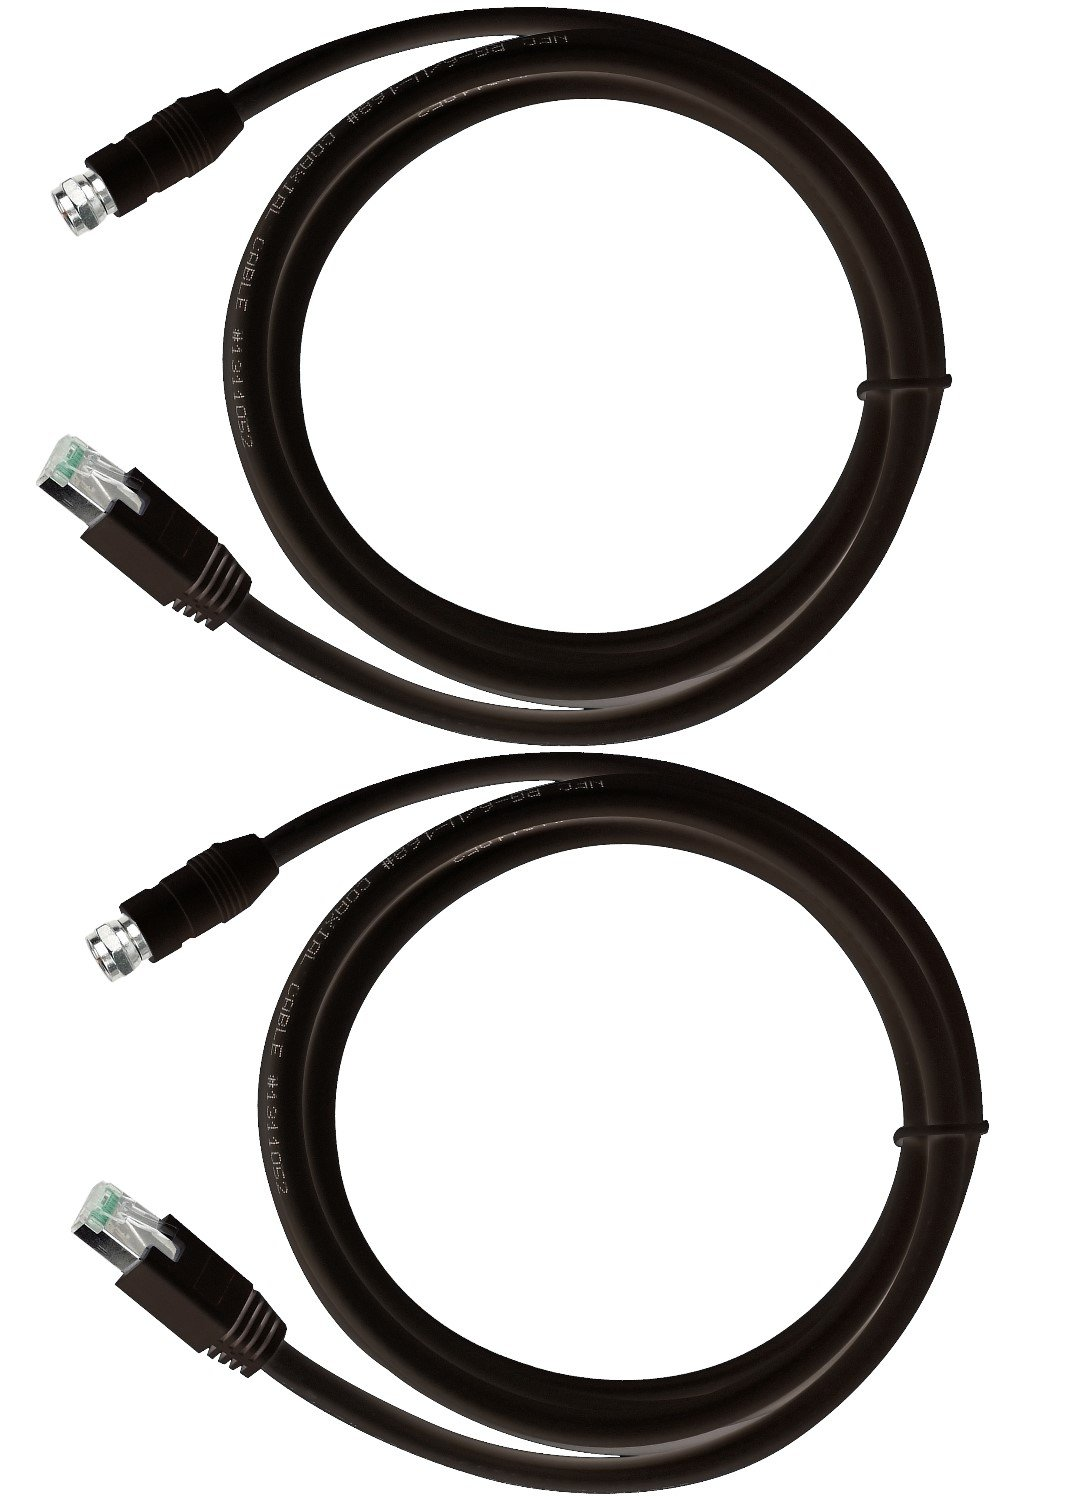 Amazon.com: RG-6 Coax Cable over UTP Cat5e/6 Extender Balun ...